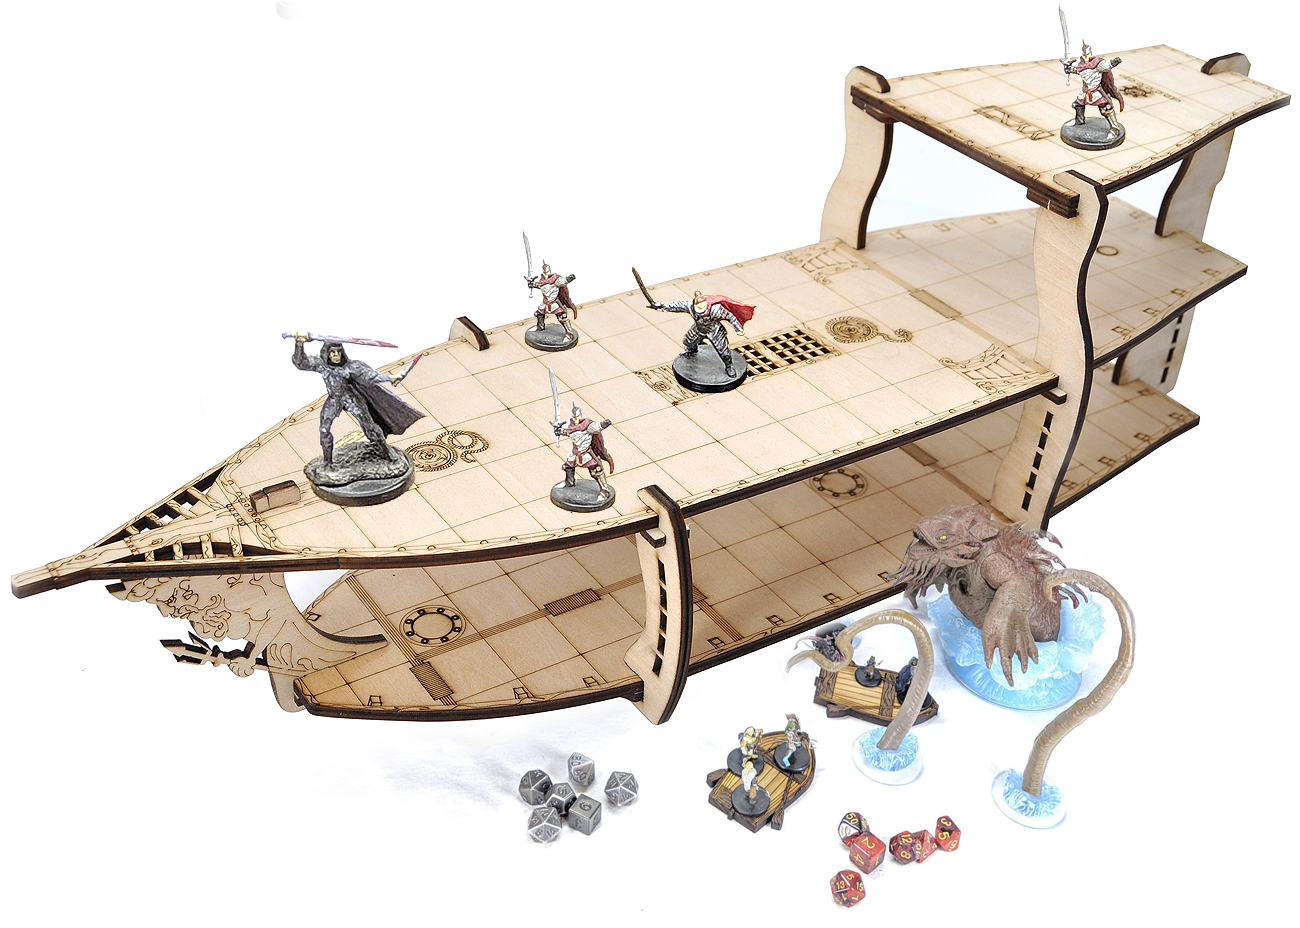 D&D Miniatures Action Figure Wood Display Stand - Large 3-Level Brigantine Ship Bundle for Tabletop RPG